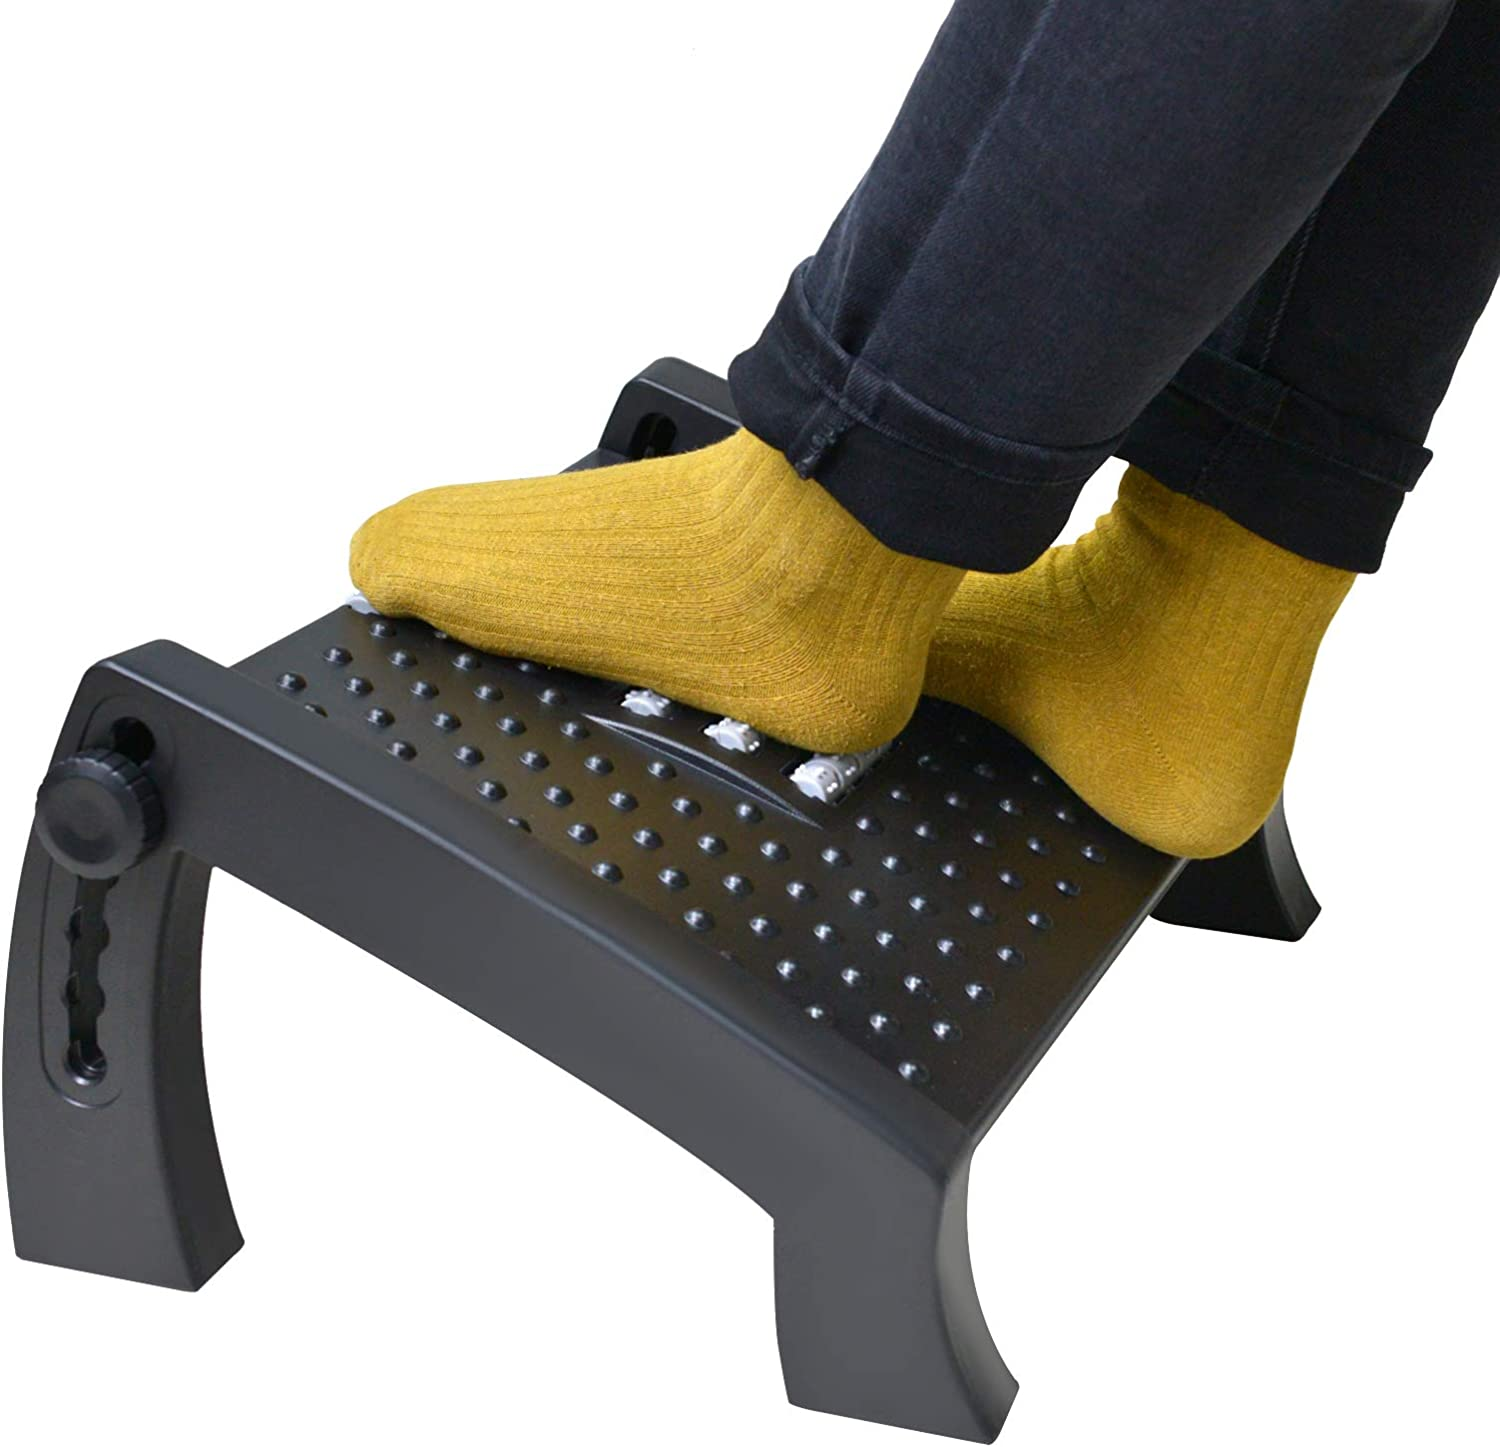 SurmountWay Adjustable Foot Rest for Under Desk at Work,Upgrade Widened Panel Office Footrest with Massage Texture and Roller,Ergonomic Foot with 6 Height Position, Max-Load 40Lbs Footrest for Home